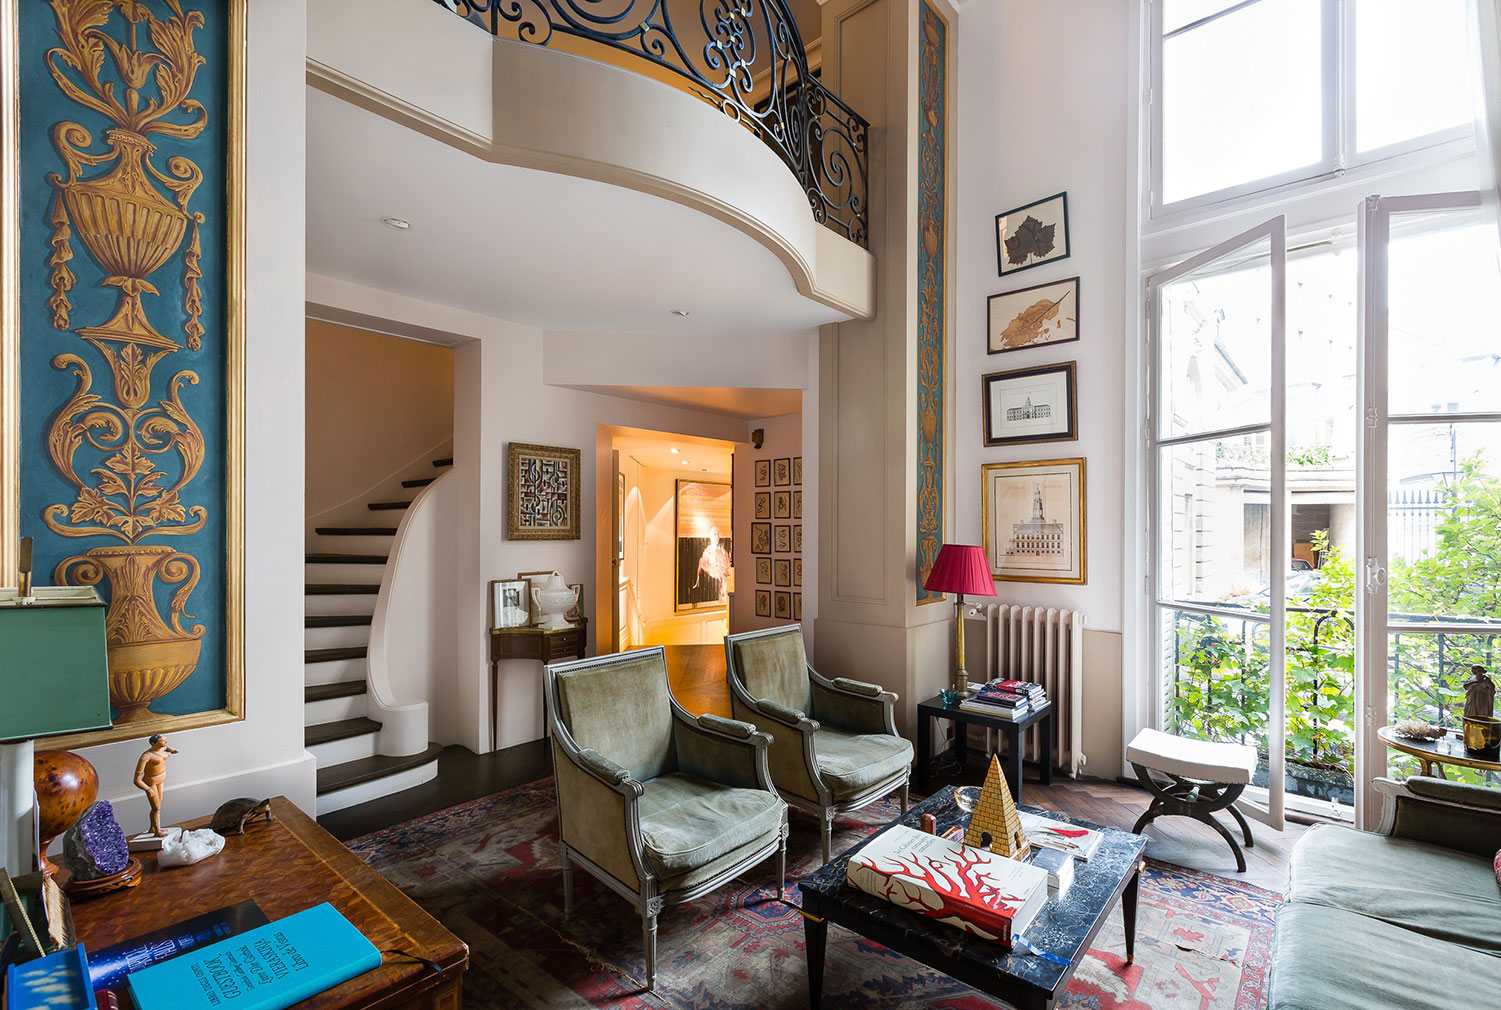 7 of the best Paris apartments for rent